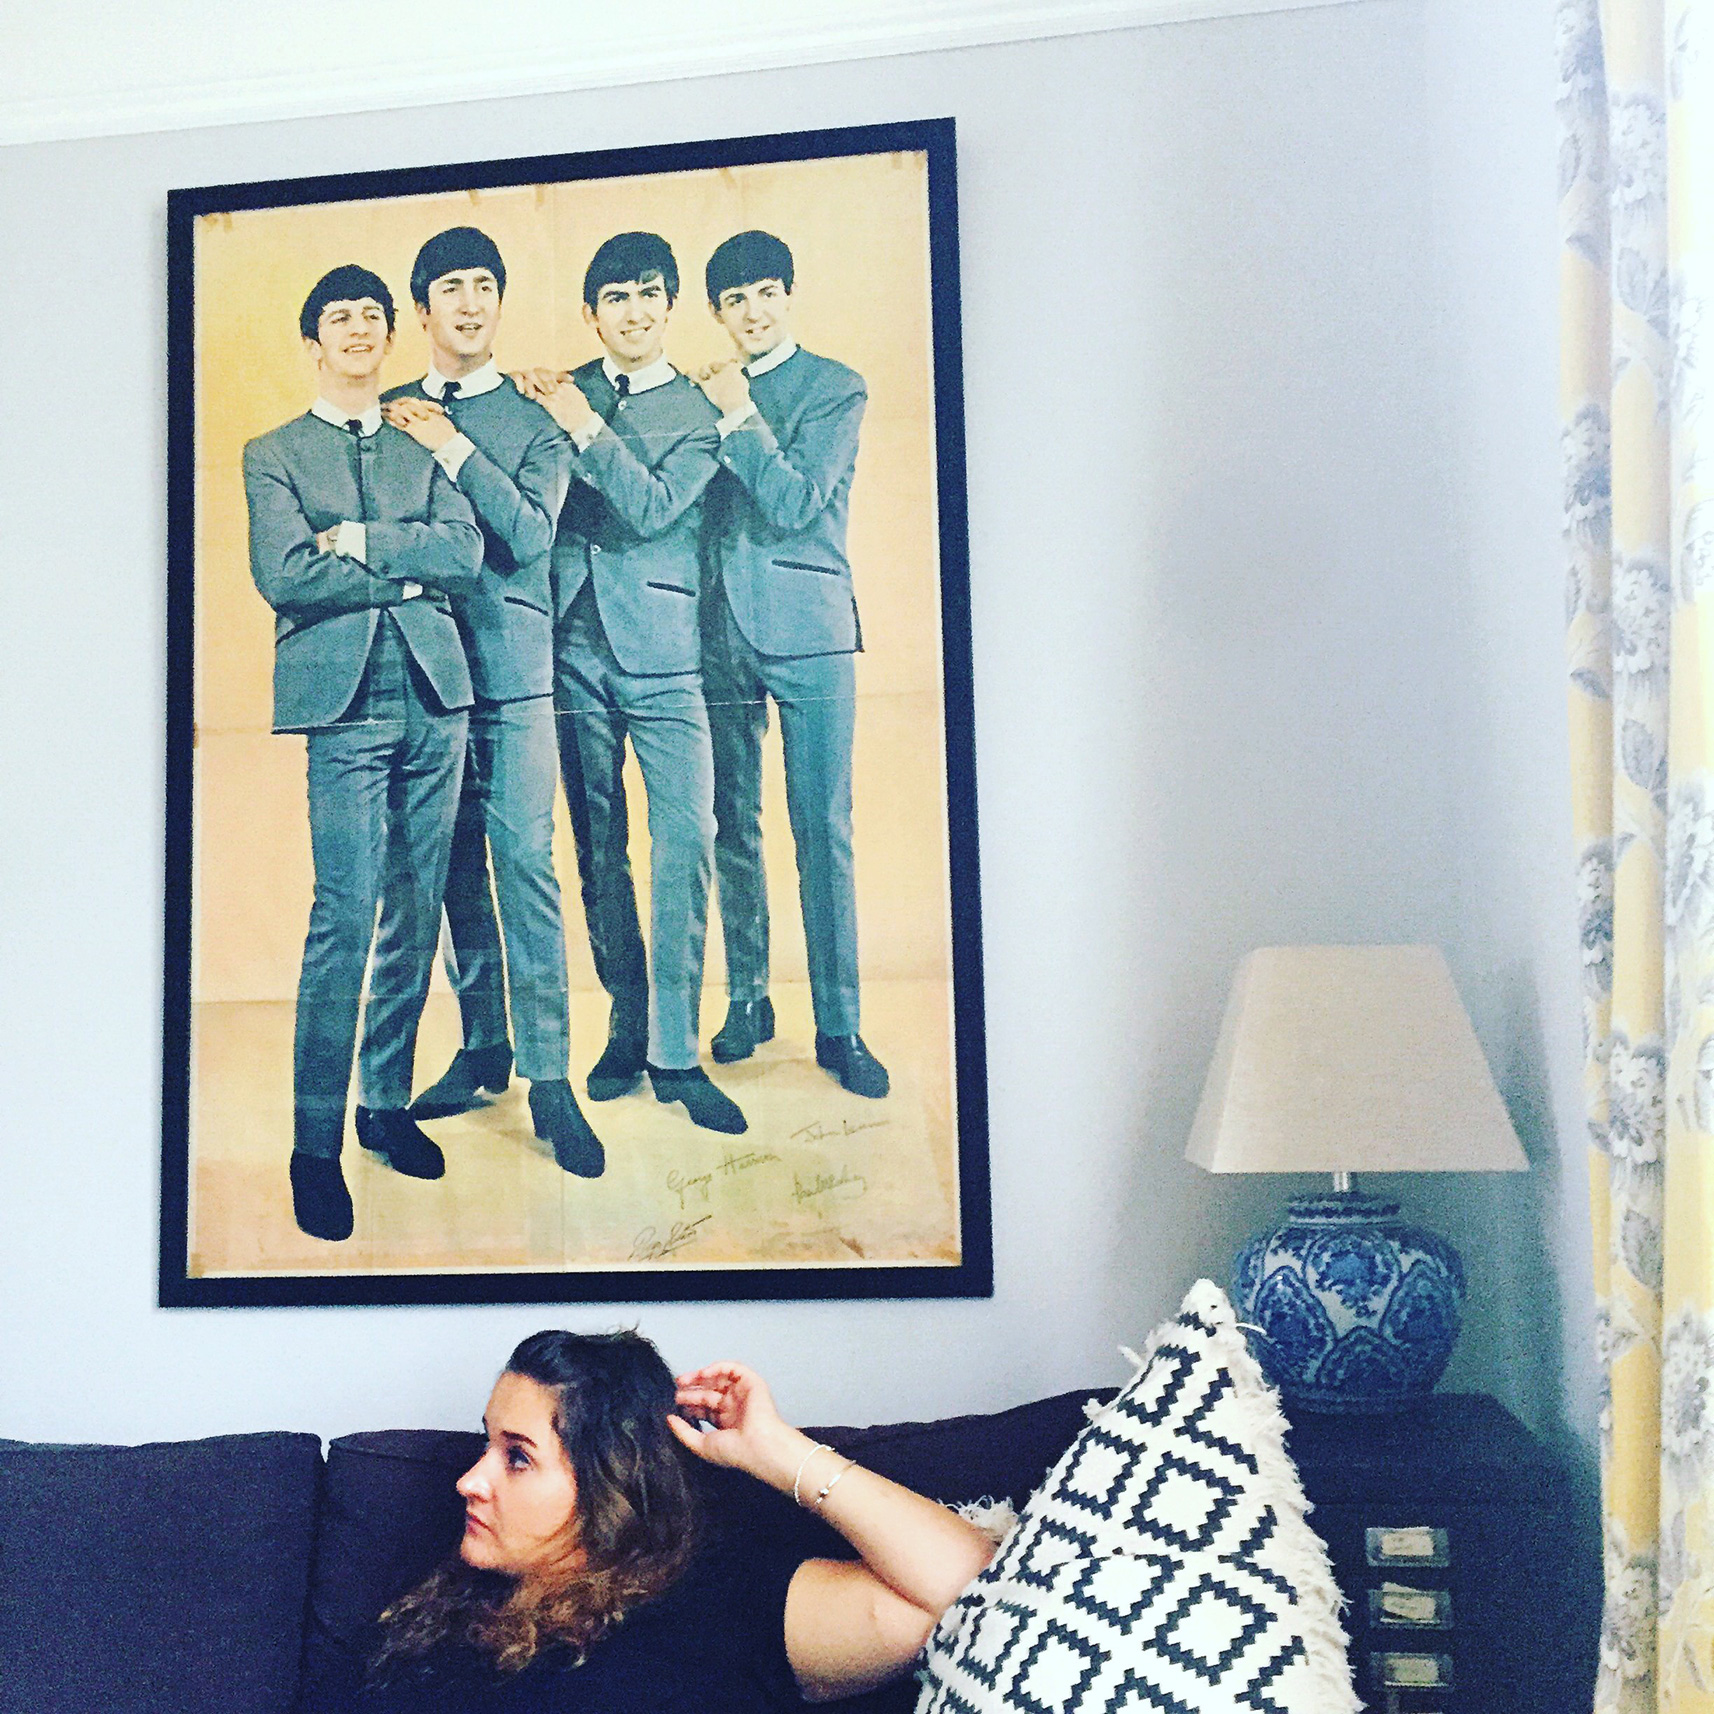 brighton-food-blog-review-airbnb-lizi-decor-scandanavian-beatles.JPG